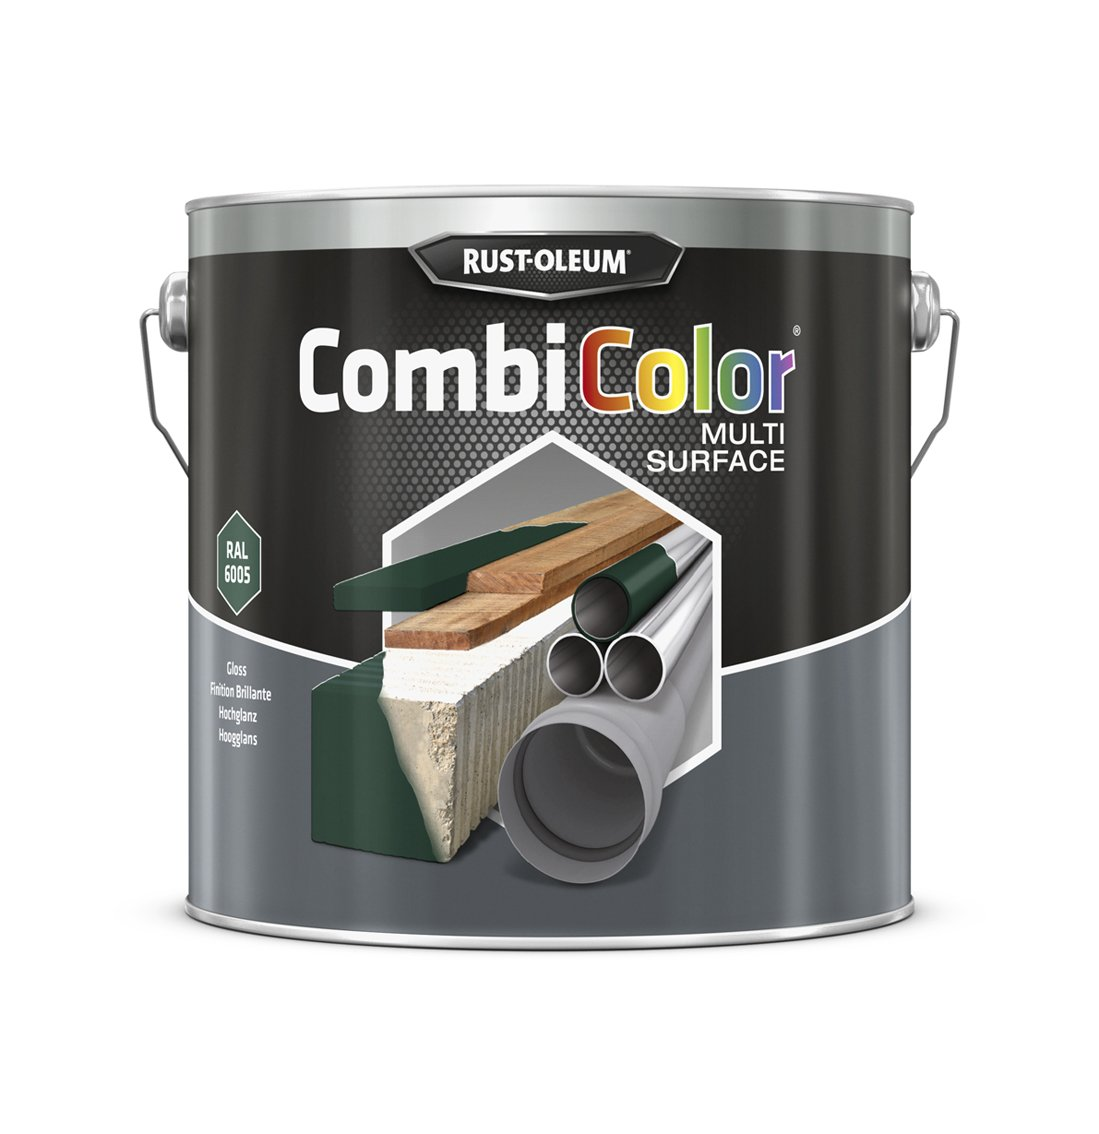 RUST-OLEUM 7337MS.2.5 Combicolor Multi-Surface, One Paint, Many Surfaces, Moss green-RAL 6005